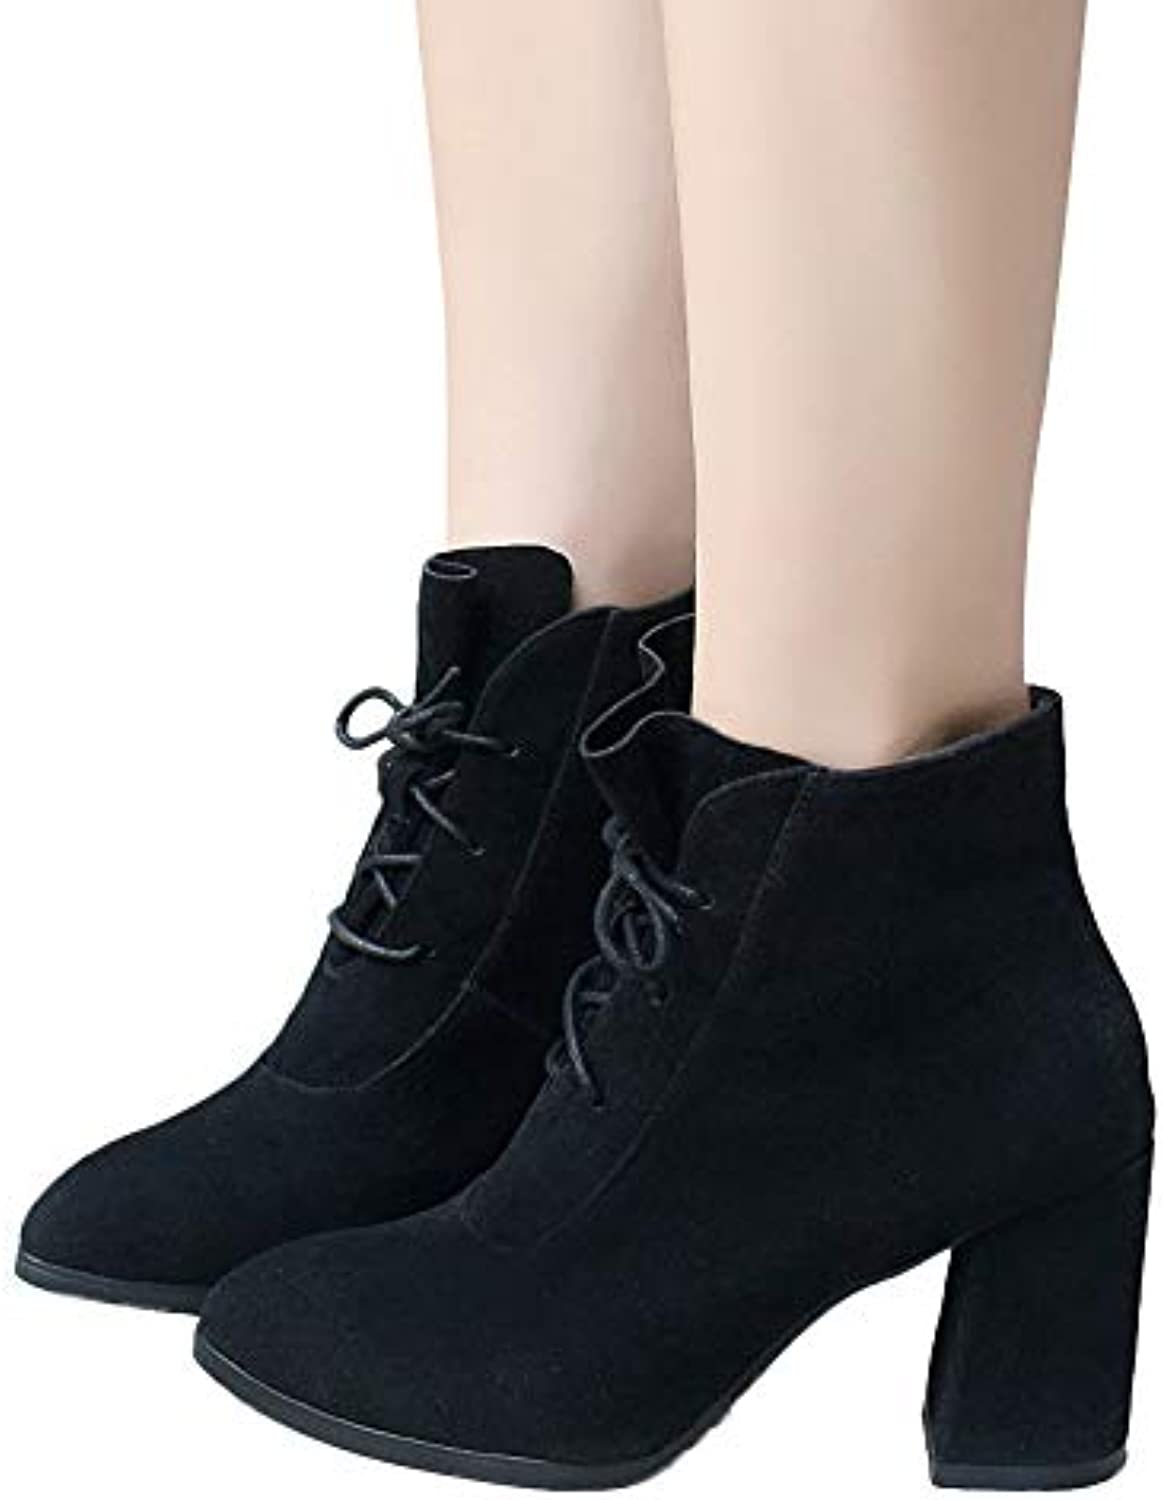 32af9a3e4b333 Women Pointed Toe High Boot Heel 30207 Shoes 35-43 Solid Color Suede Martin  Boots Boot 35-43 Khaki Black Shoes Parent B07HJX1P4H 04f72ef